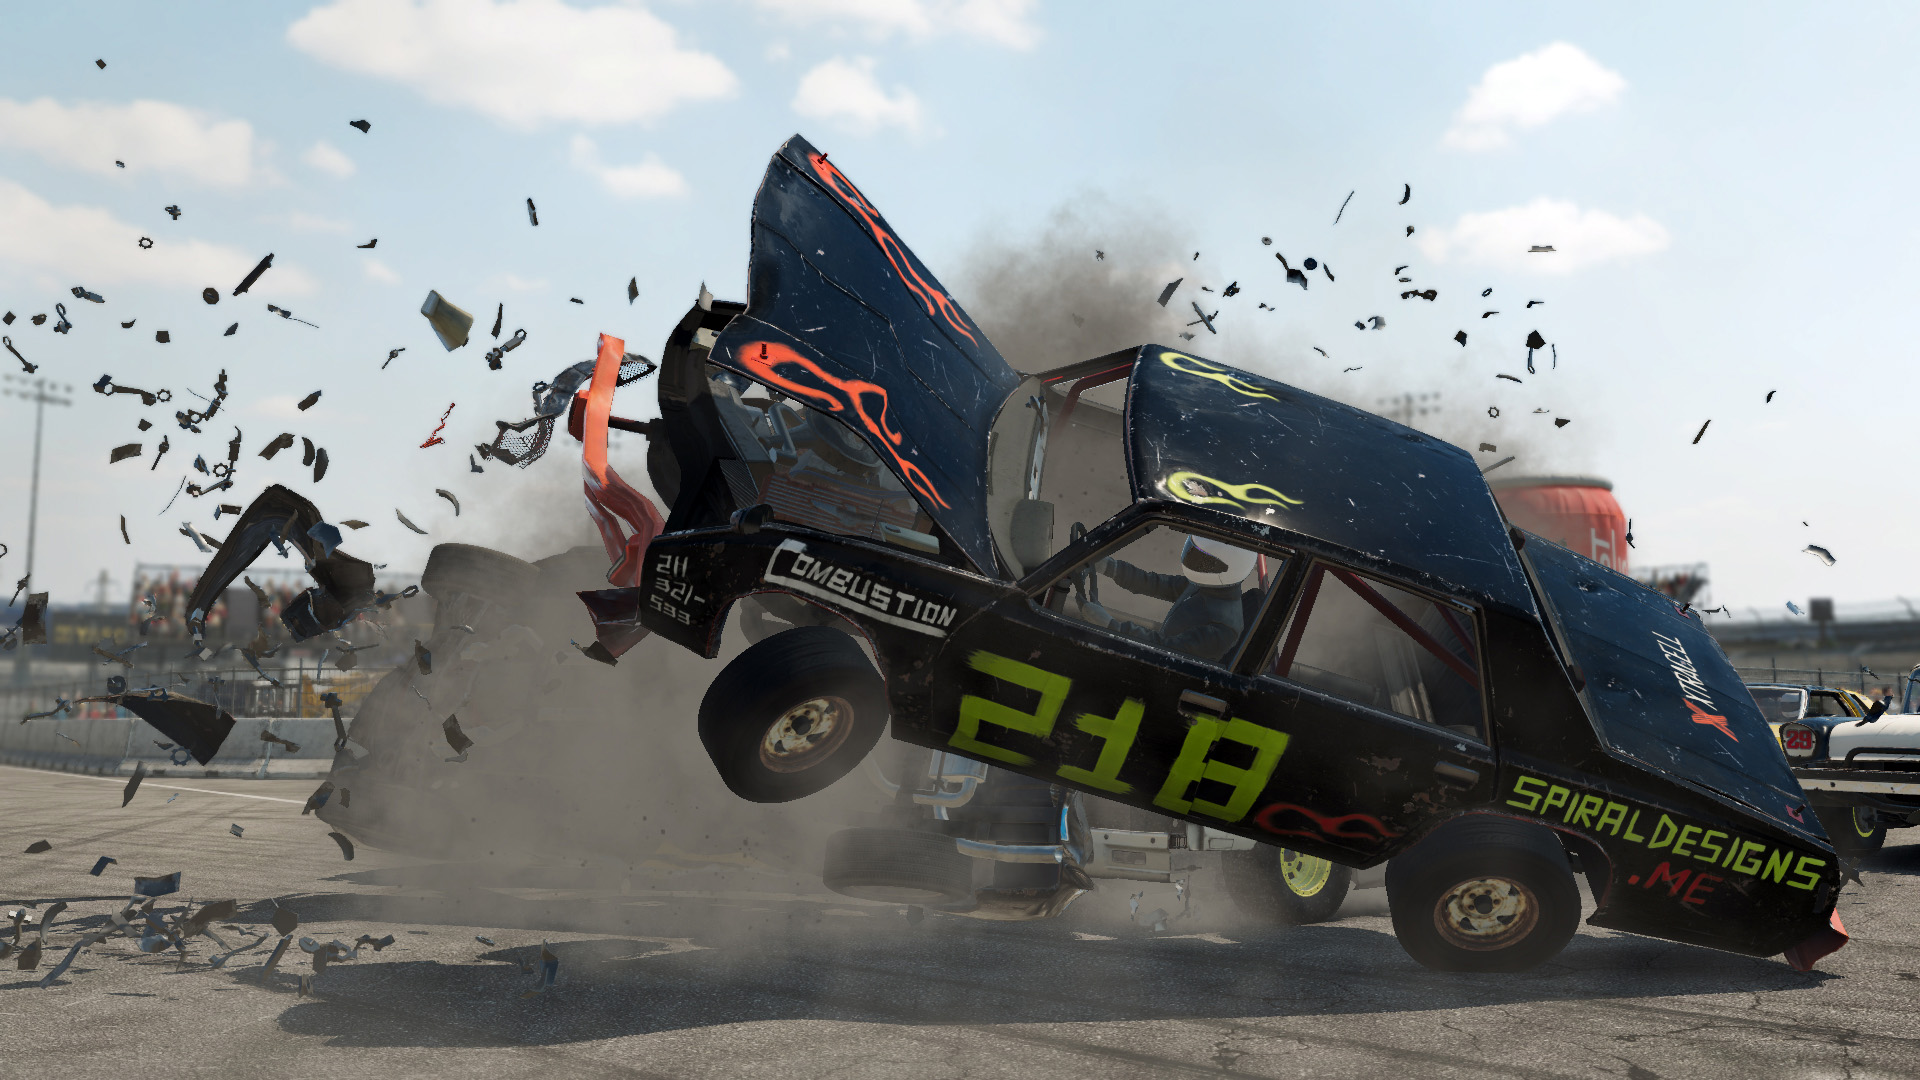 Wreckfest - something to look forward to for console owners